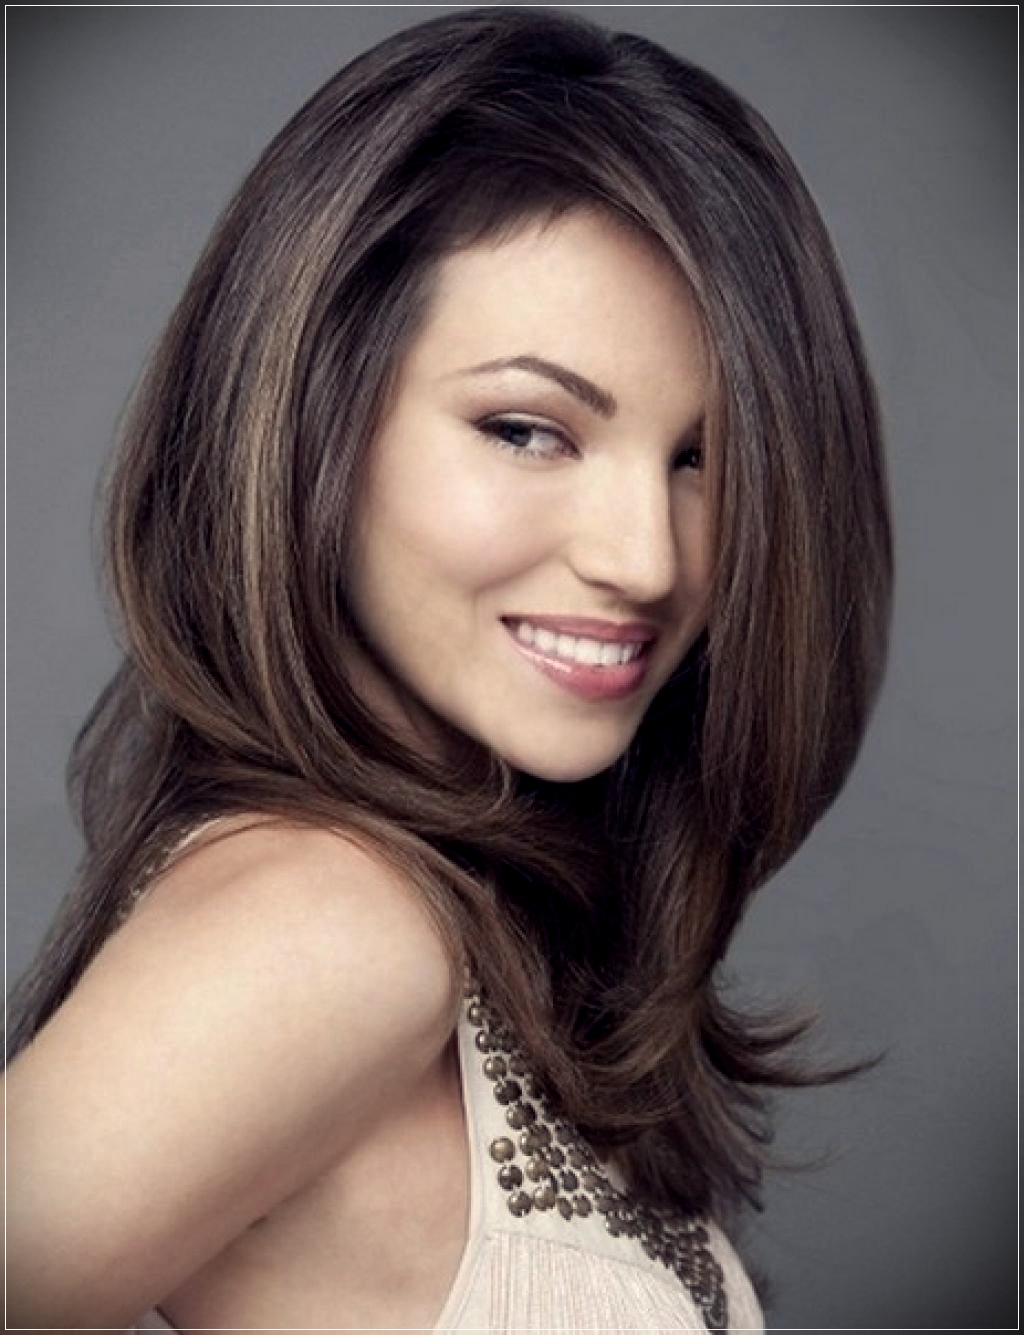 Different types of hairdos for mid length hair  - hairdos for mid length hair 3